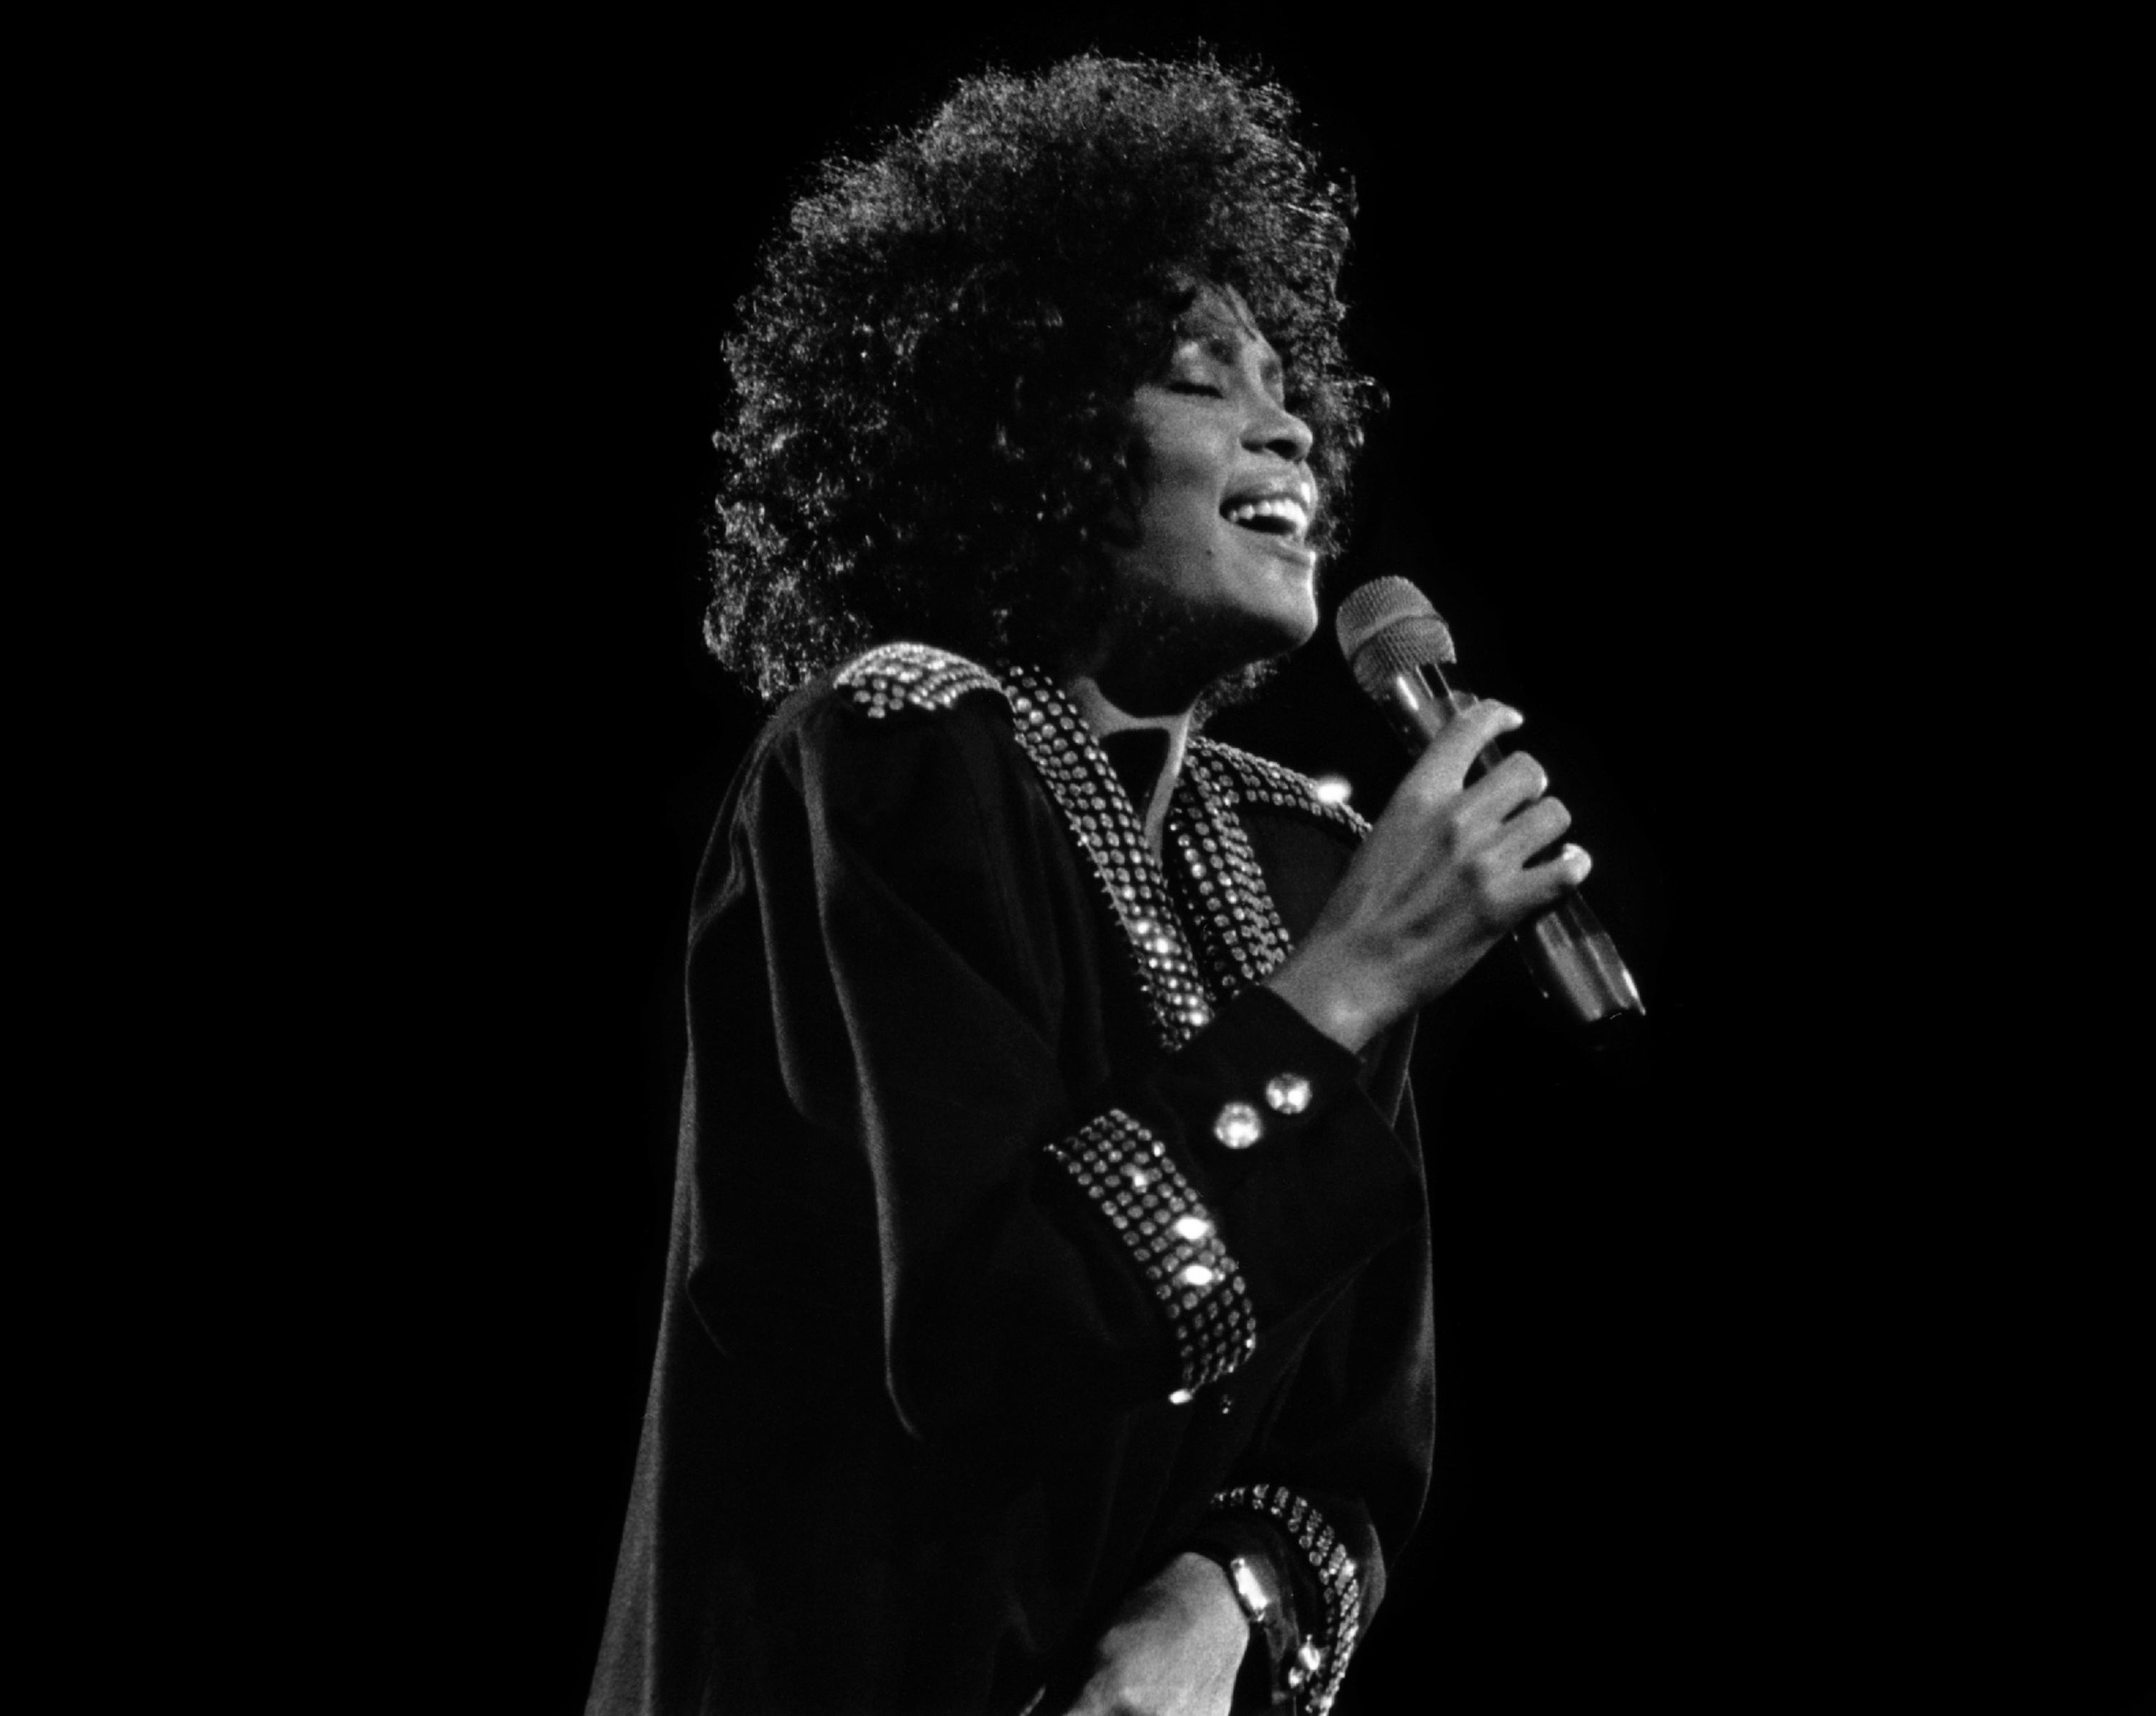 Whitney Houston with her eyes closed singling on stage